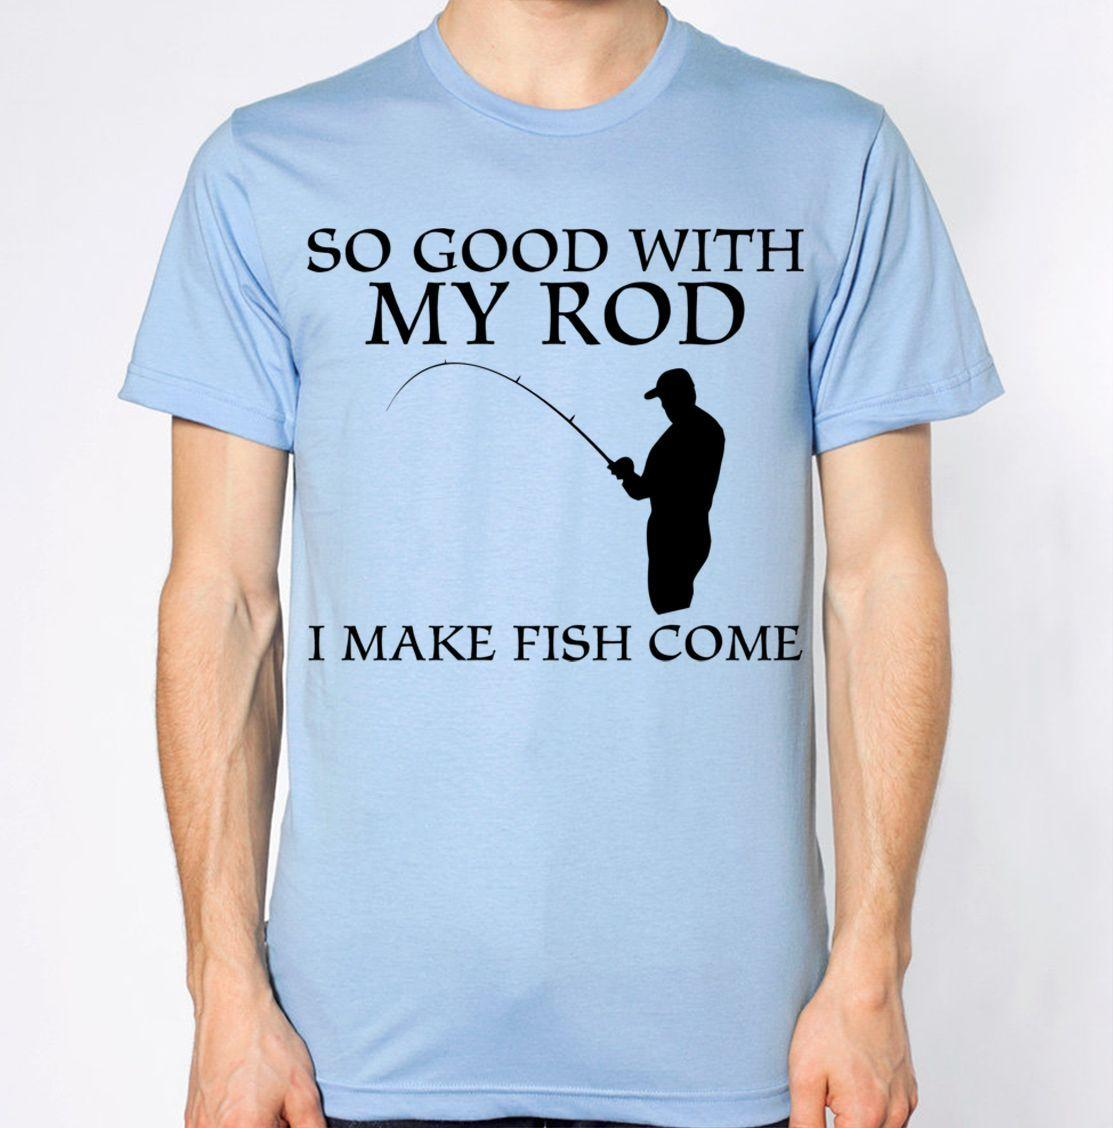 a665854d Rude Fishing Quote I Make Fish Come Joke Rod Top Humour Funny New T Shirt  Funny Unisex Casual Retro Tee Shirts T Sirts From Clothing_dealss, $12.96|  DHgate.